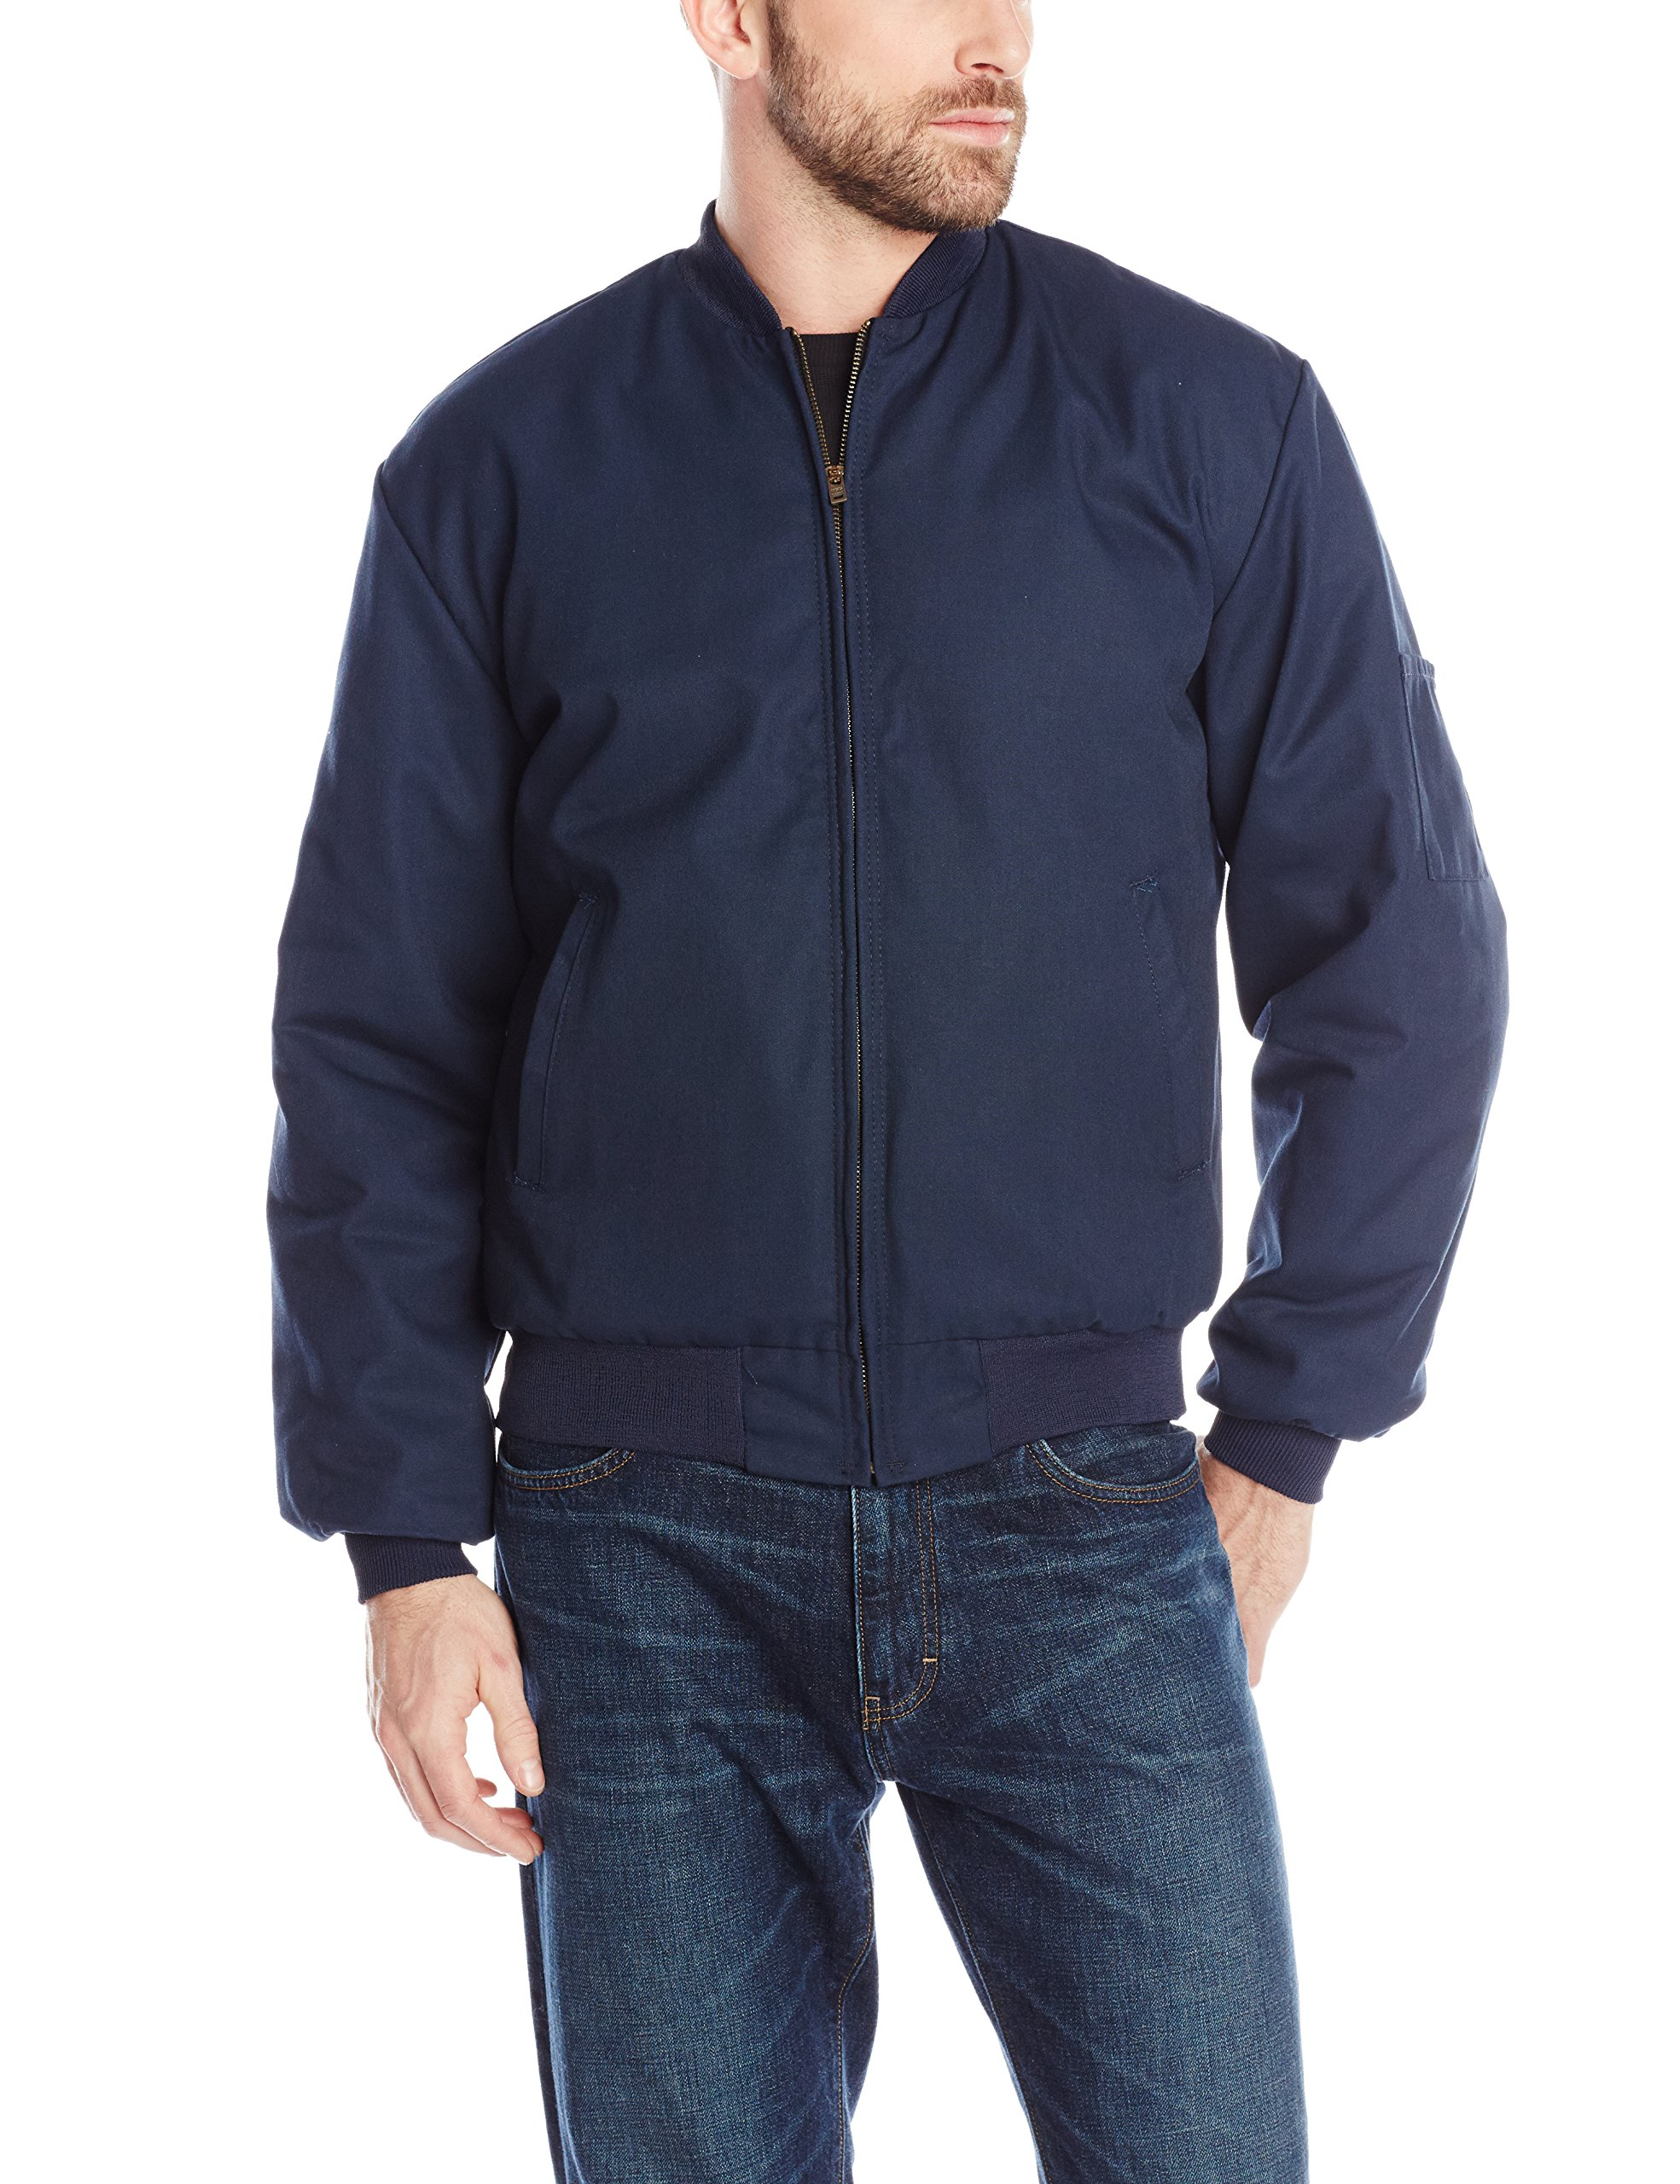 Red Kap Men's Solid Team Jacket, Navy, Large by Red Kap